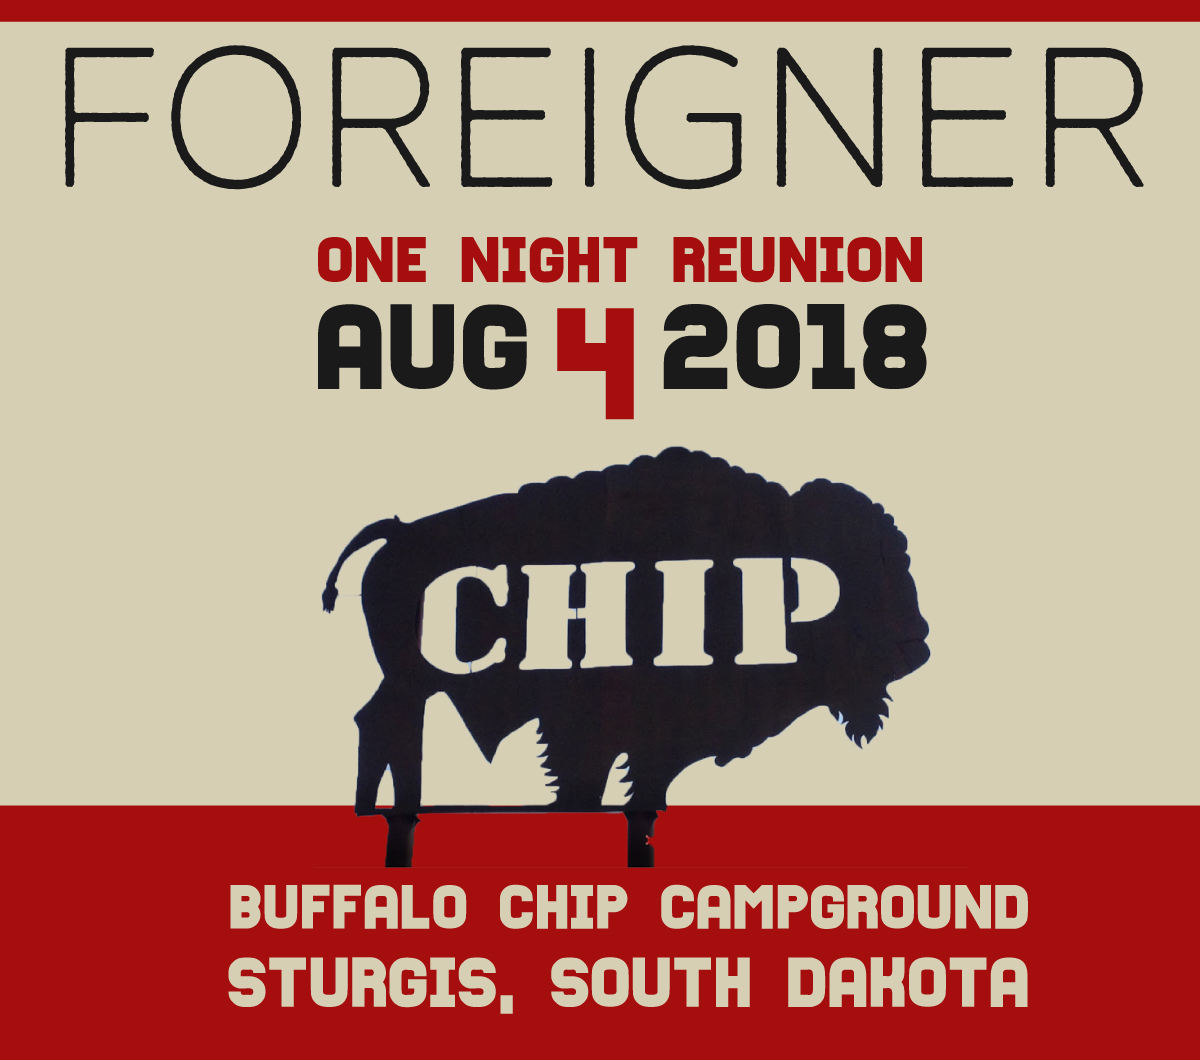 foreigner sturgis buffalo chip